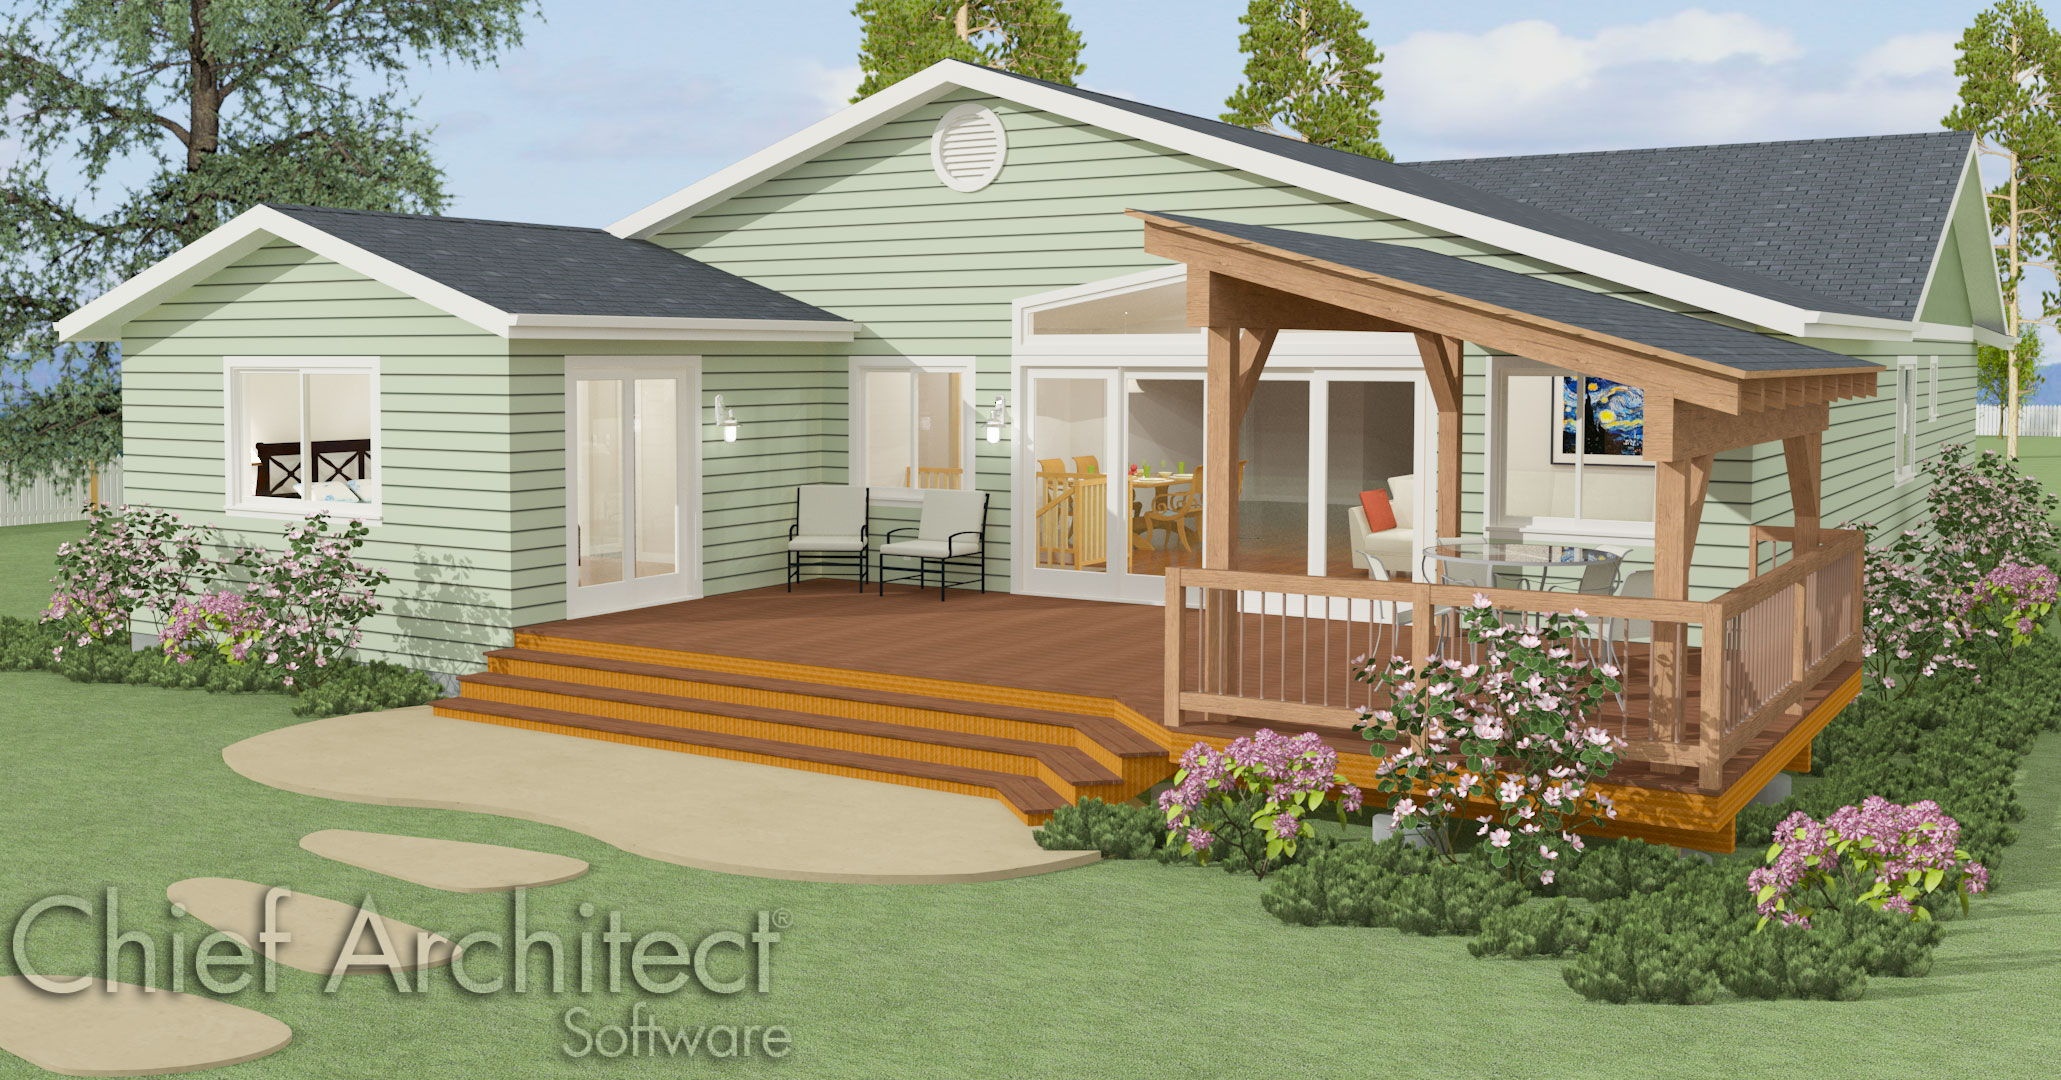 Chief architect home design software samples gallery for Build as you go house plans